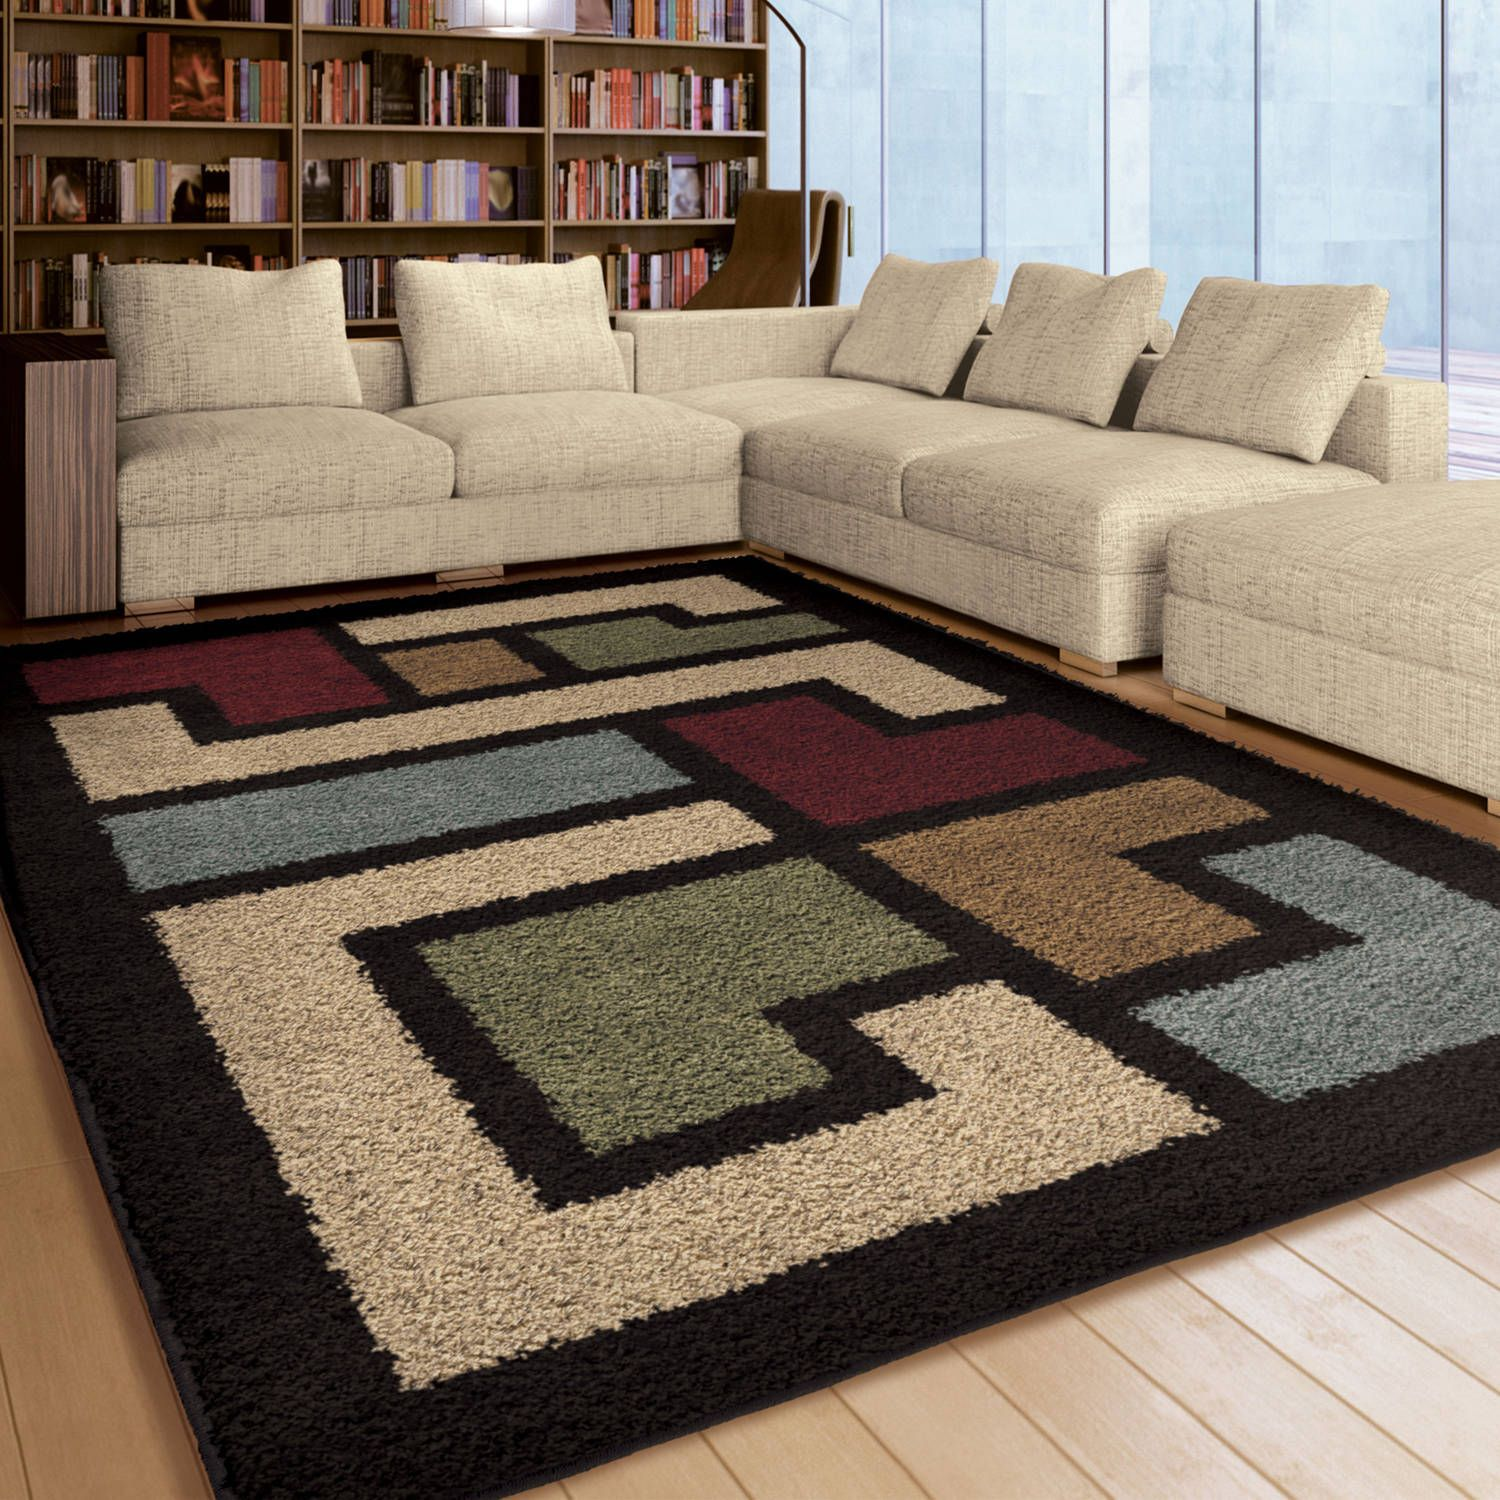 Orian Rugs Soft Shag Mapped Floor Multi Colored Area Rug Walmart Com Area Rugs Shag Area Rug Rugs On Carpet